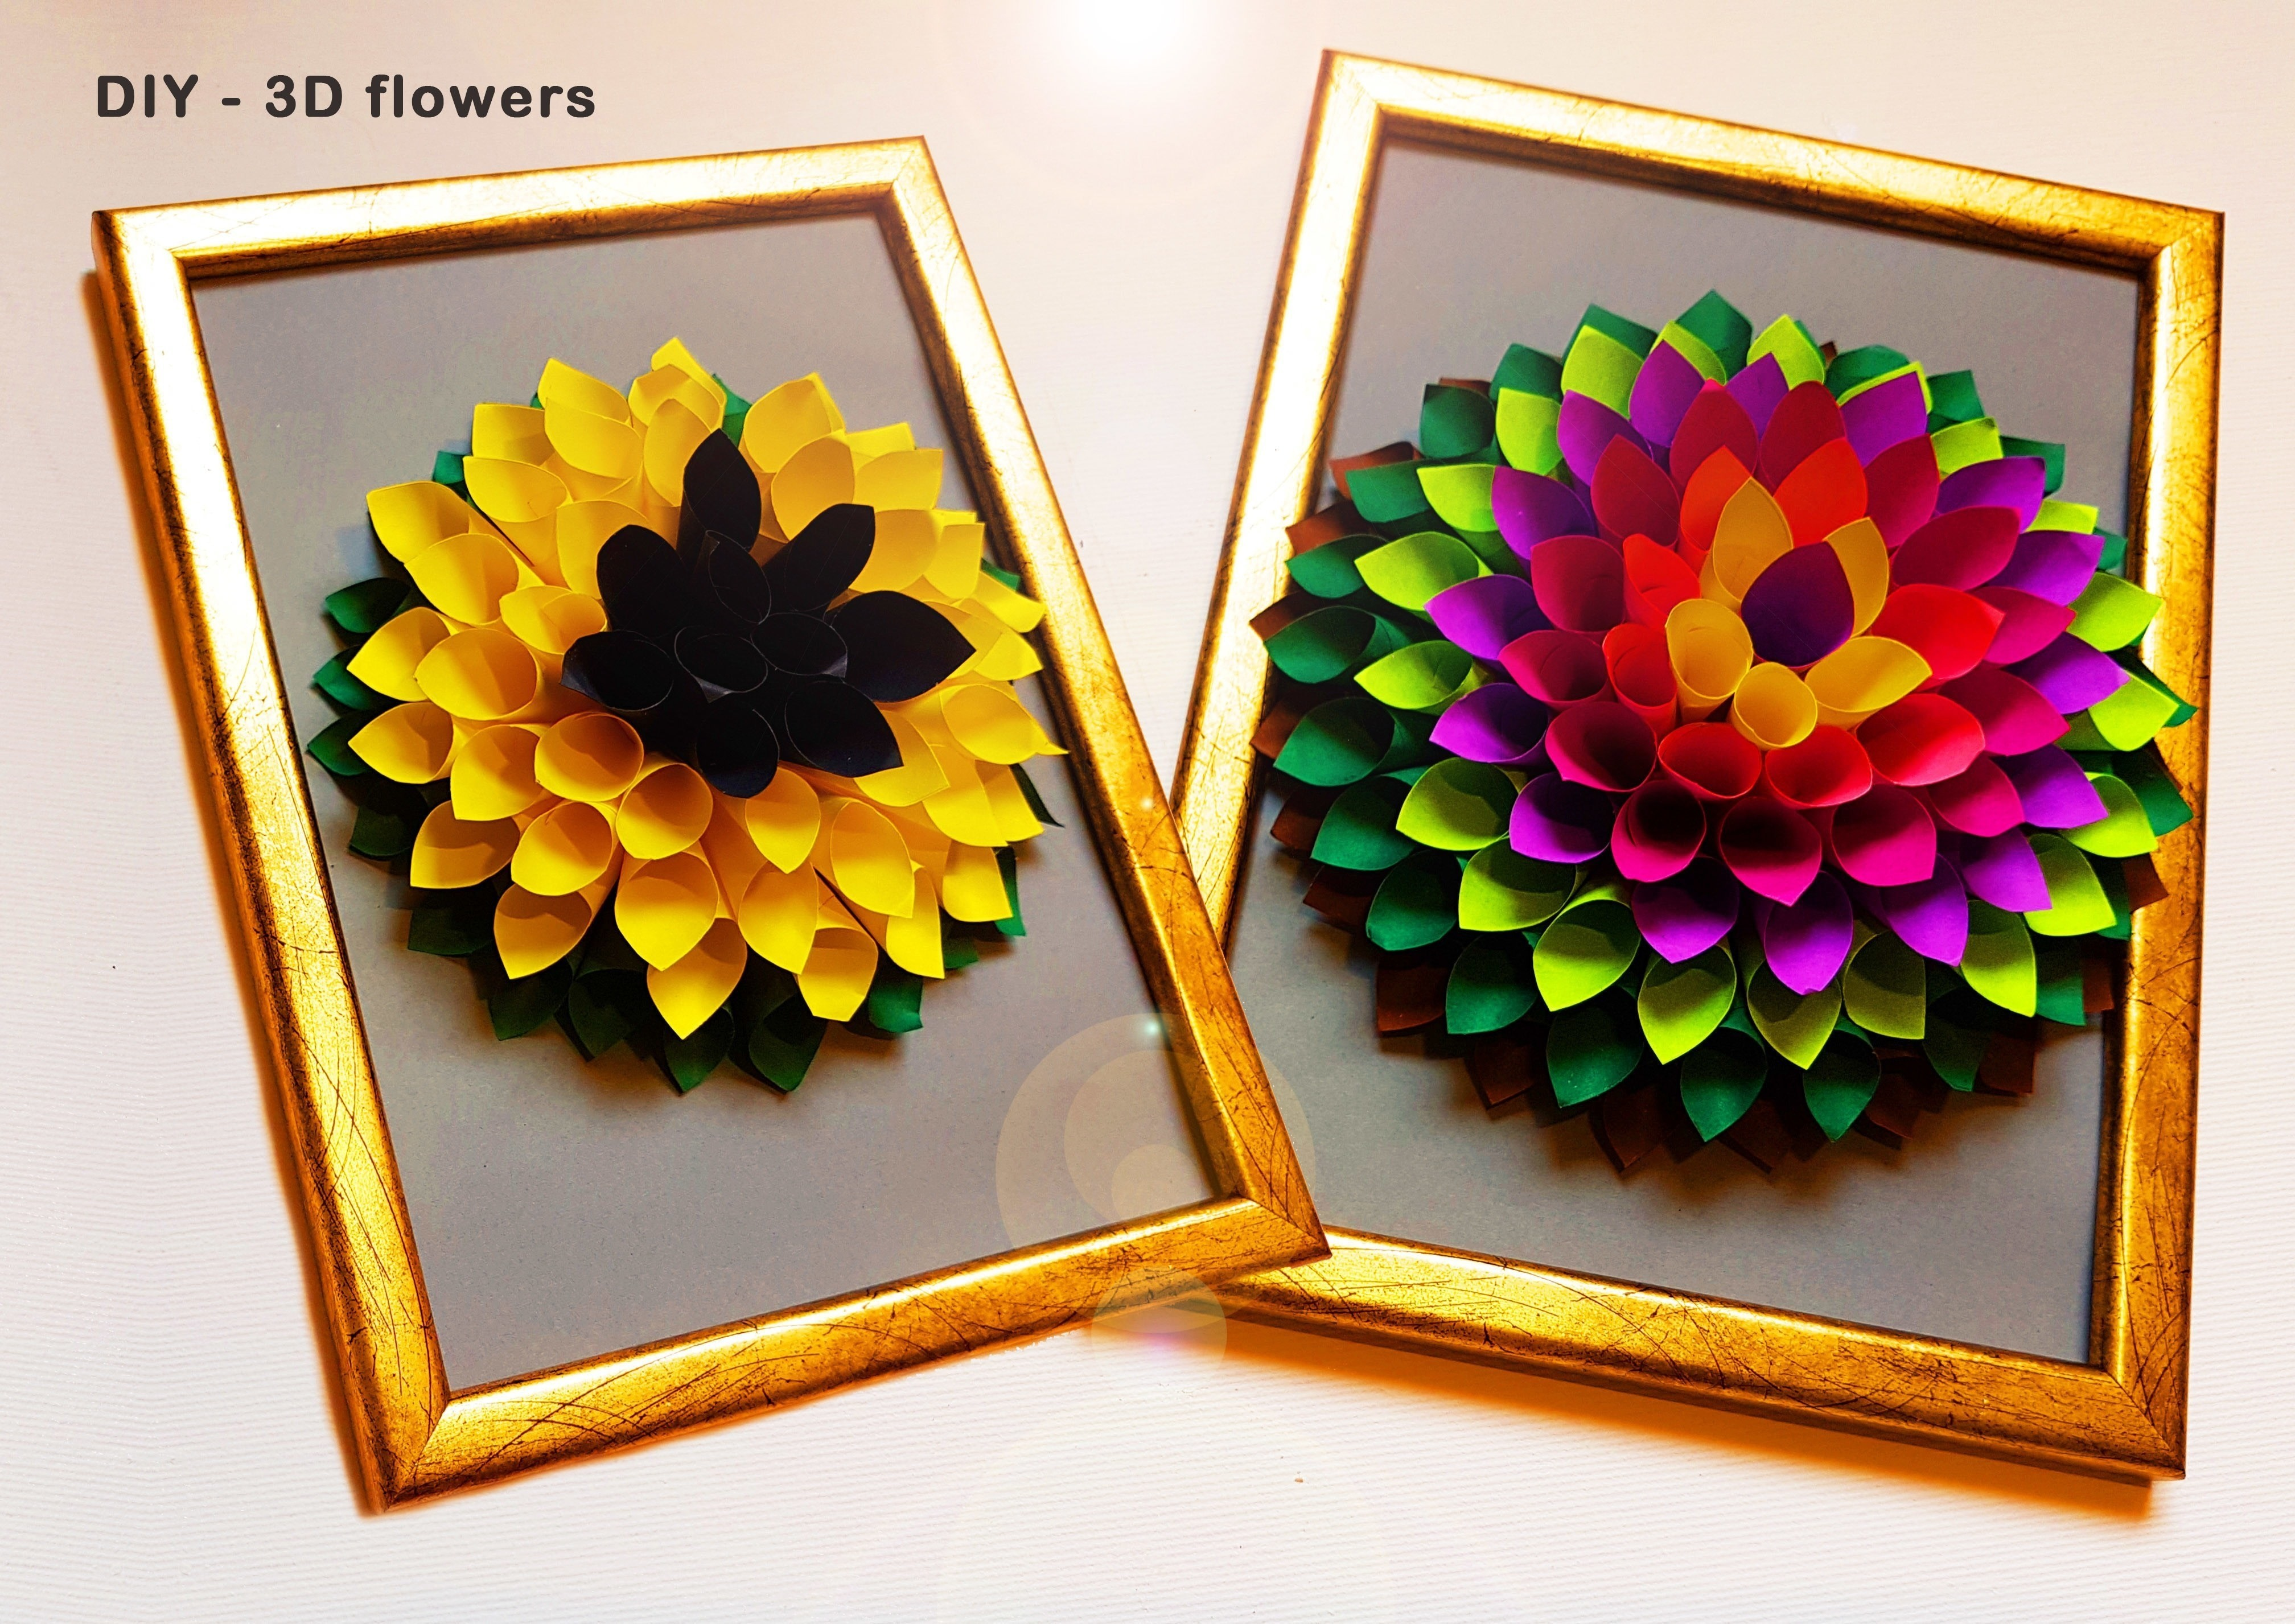 Diy 3 D Flower Gift Decor How To Make A Techniques Papercraft On